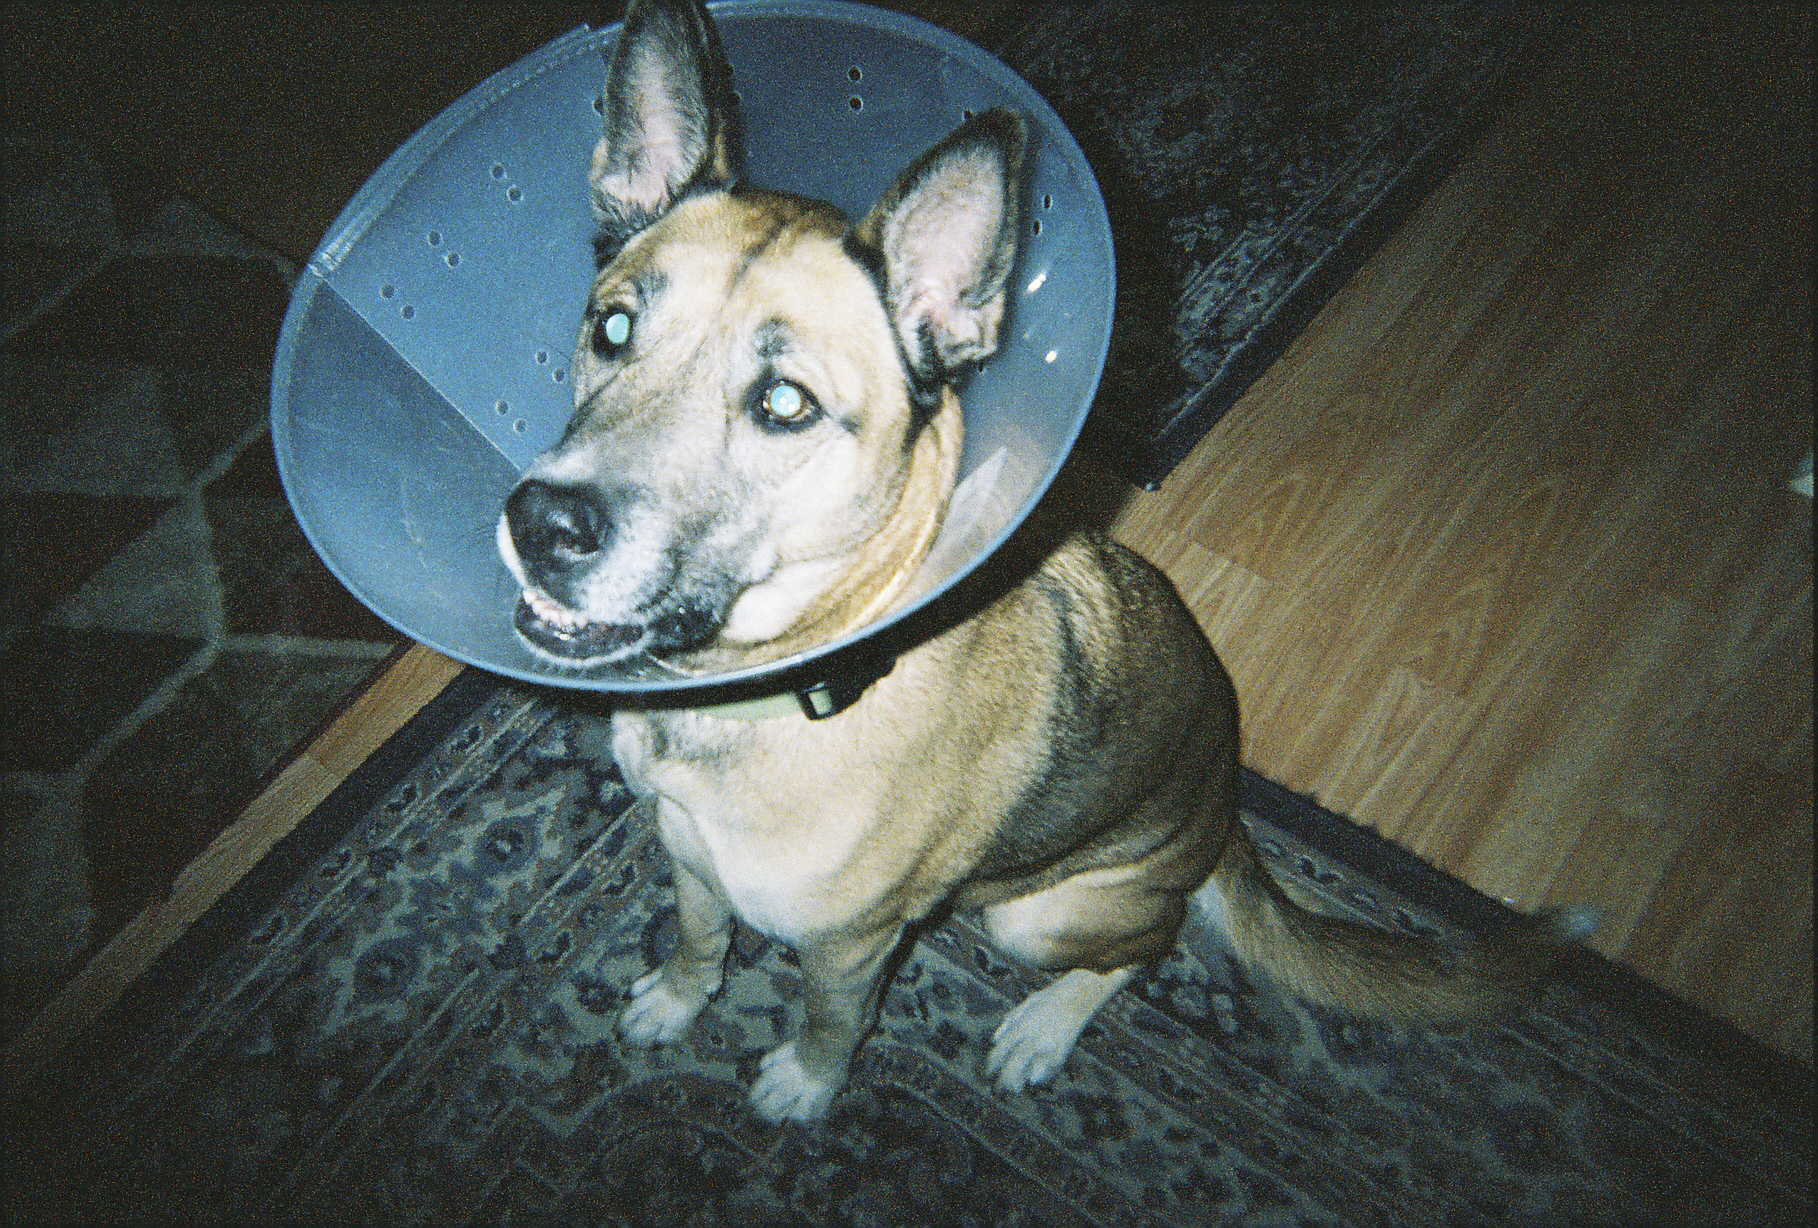 This is my dog Hunny, she lives with Jess and clearly is being neglected hence the cone. (JK Jess you're doing a great job)